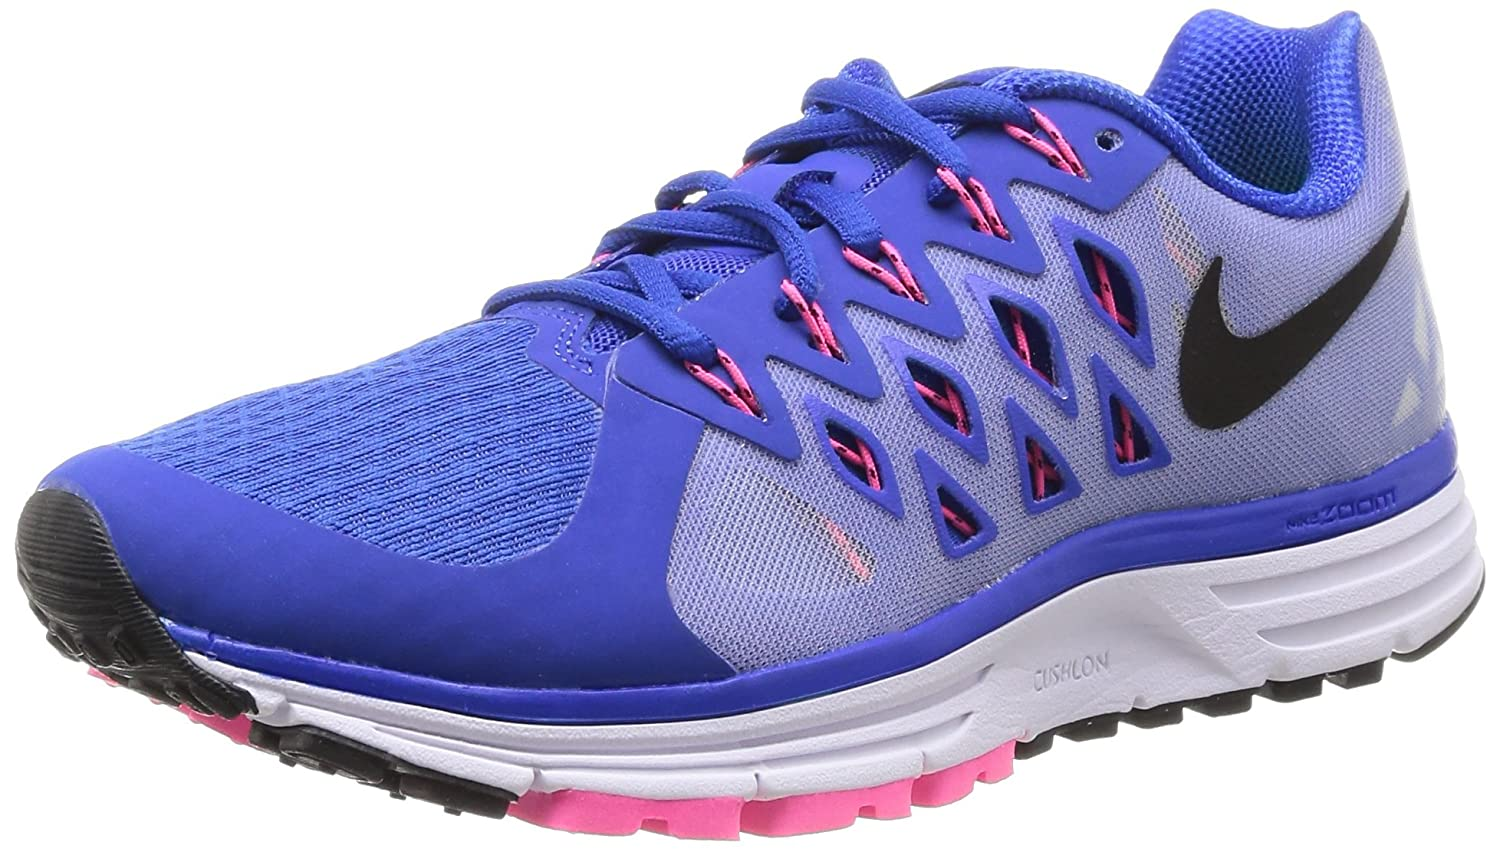 Nike Zoom Vomero 9 Running Women's Shoes